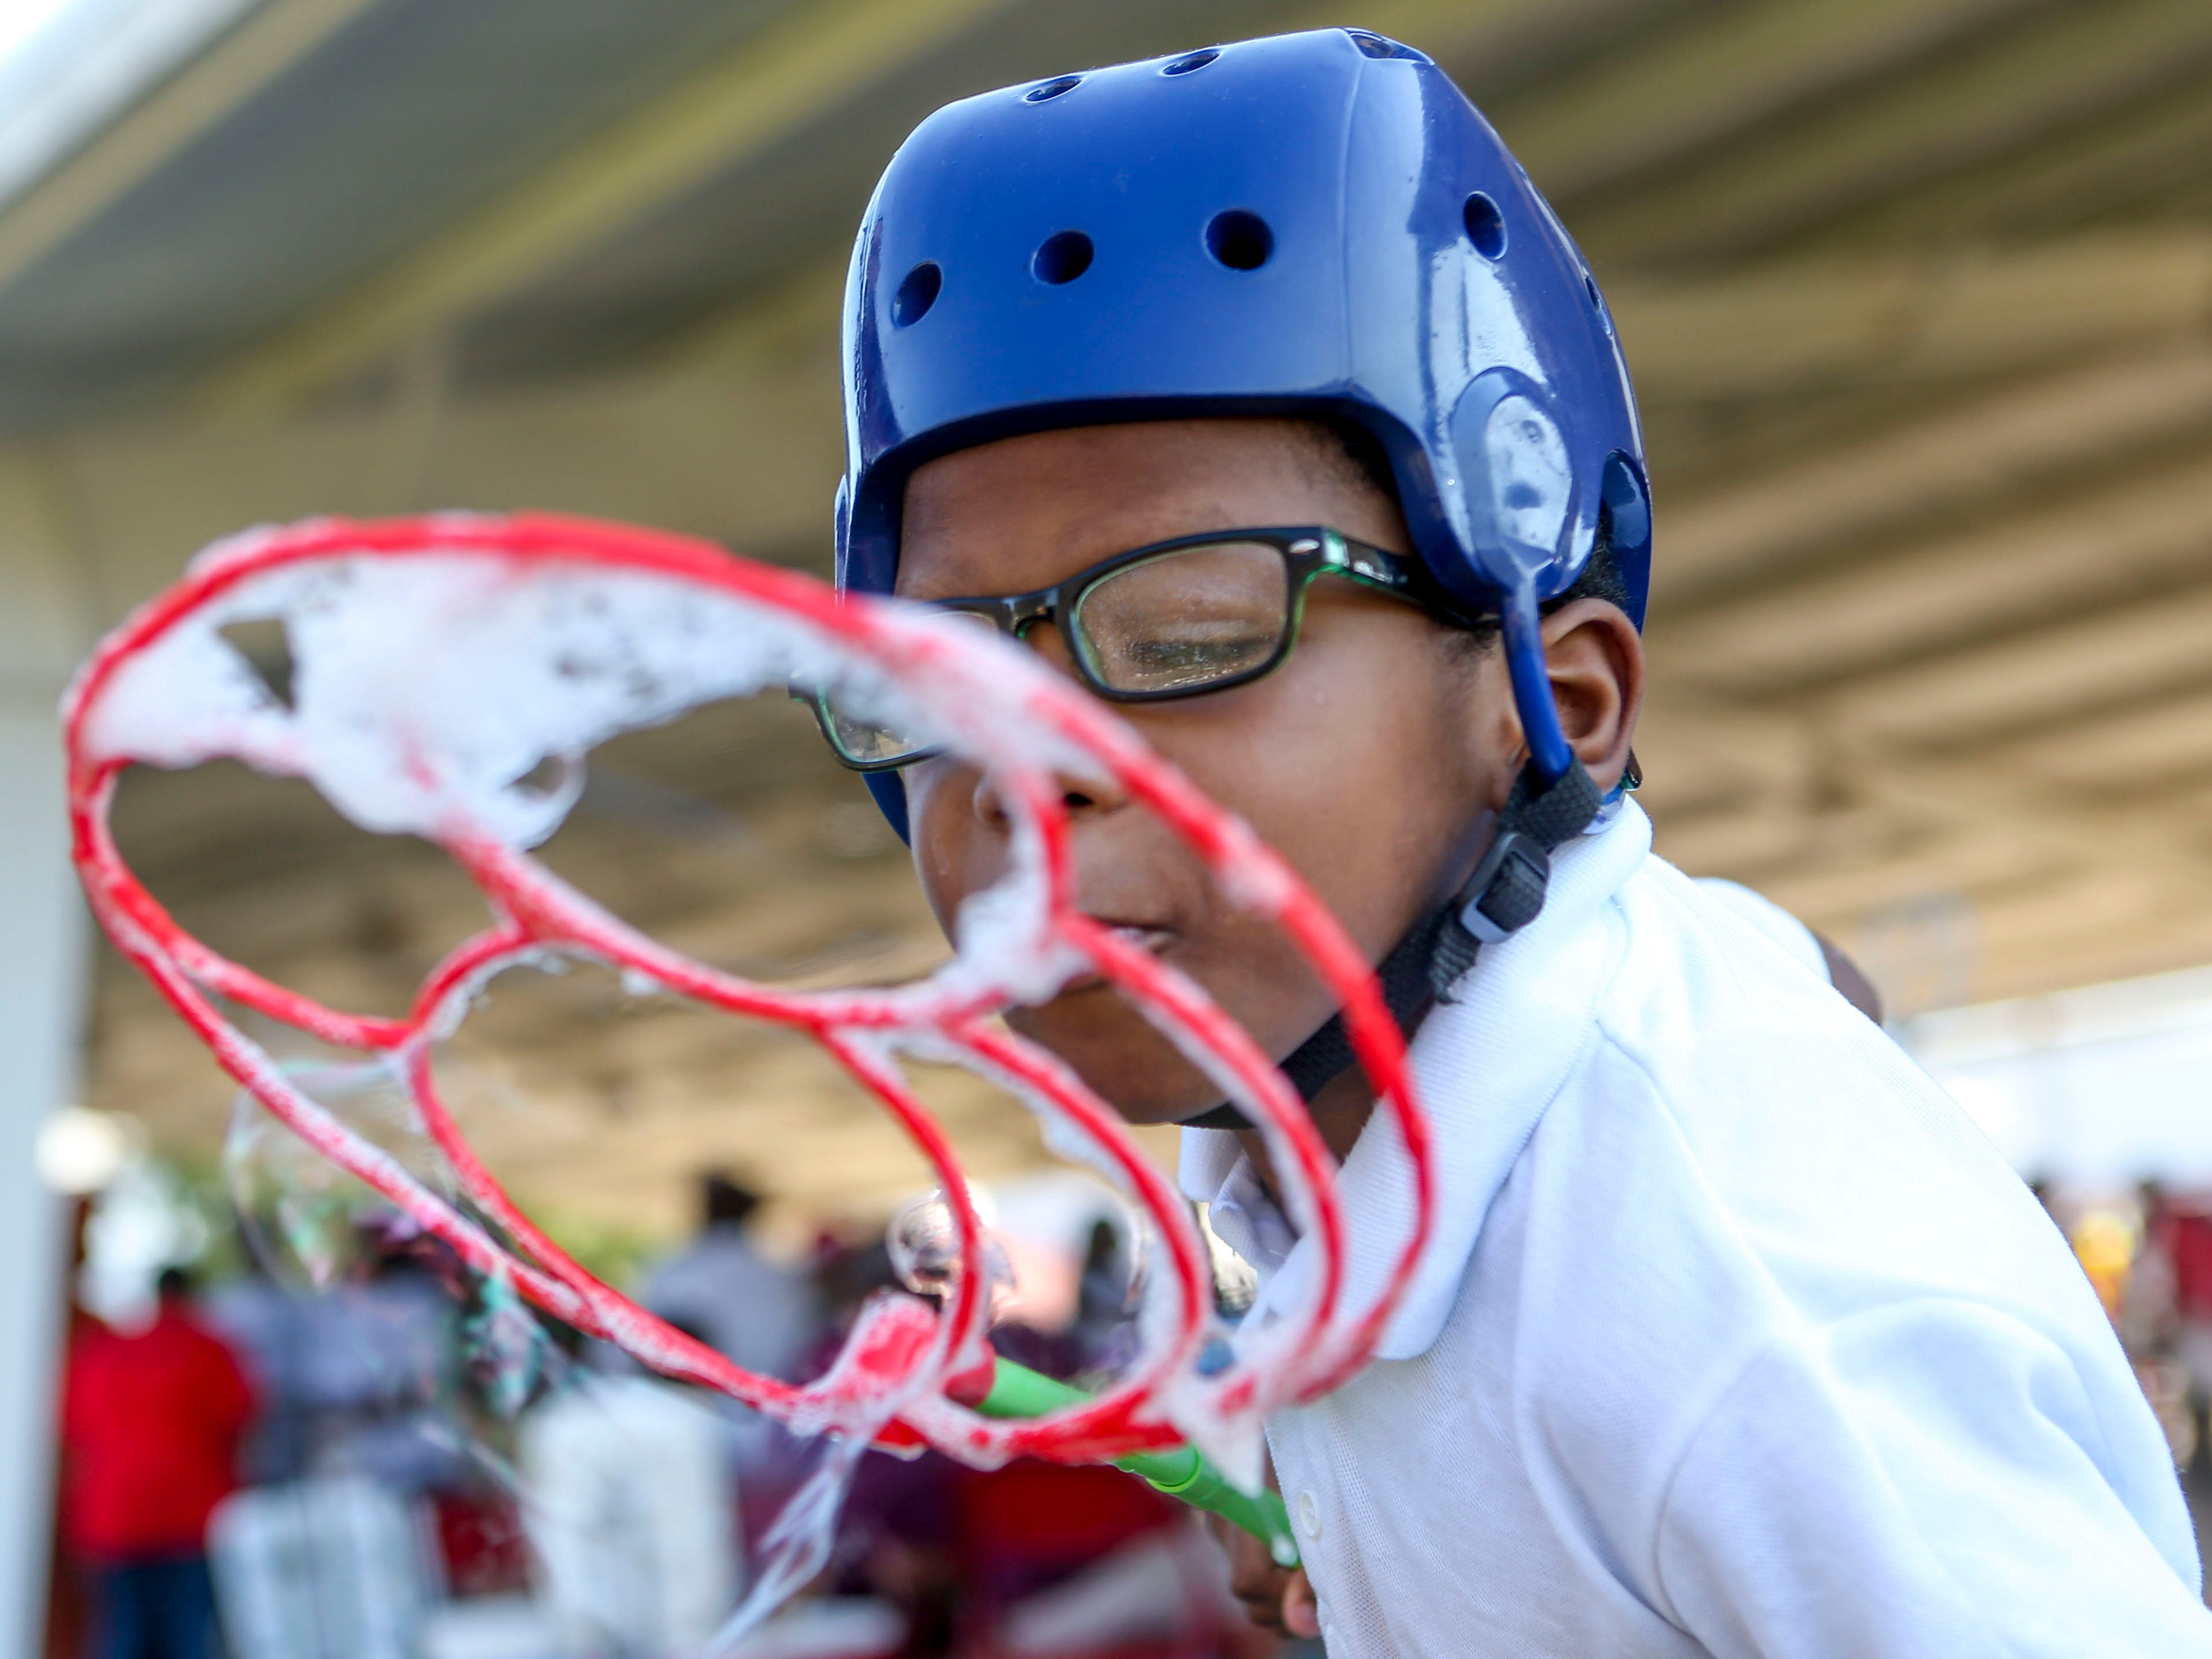 A young boy blows bubbles at the Day of Champions celebration held at Jackson Fairgrounds Park in Jackson, Tenn., on Wednesday, Sept. 19, 2018.